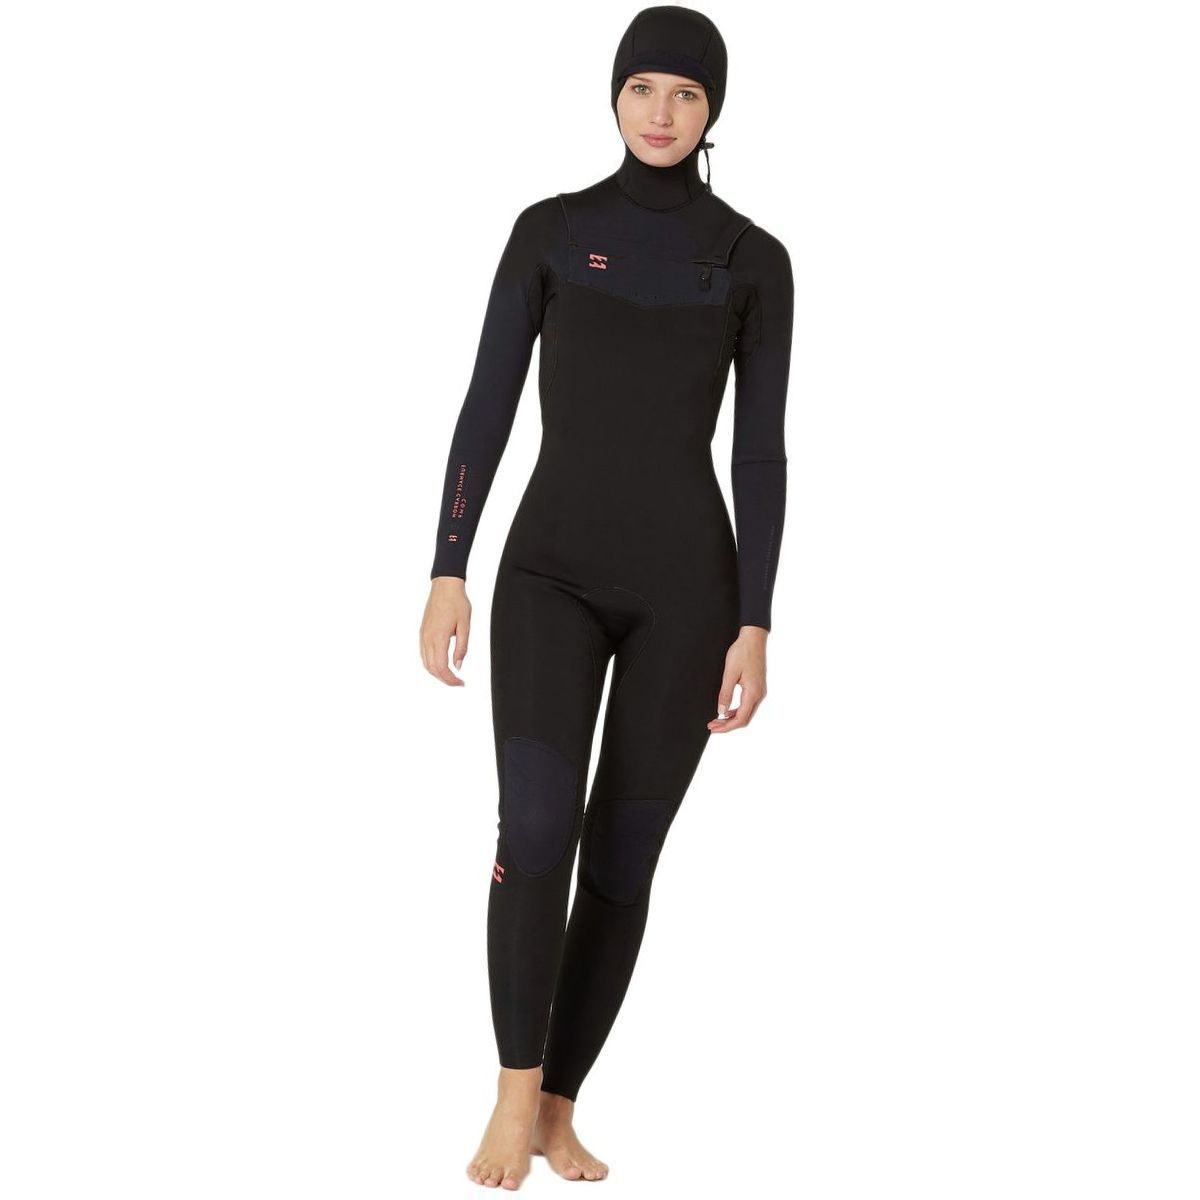 Billabong 5/4 Furnace Carbon Chest-Zip Hooded Wetsuit - Women's